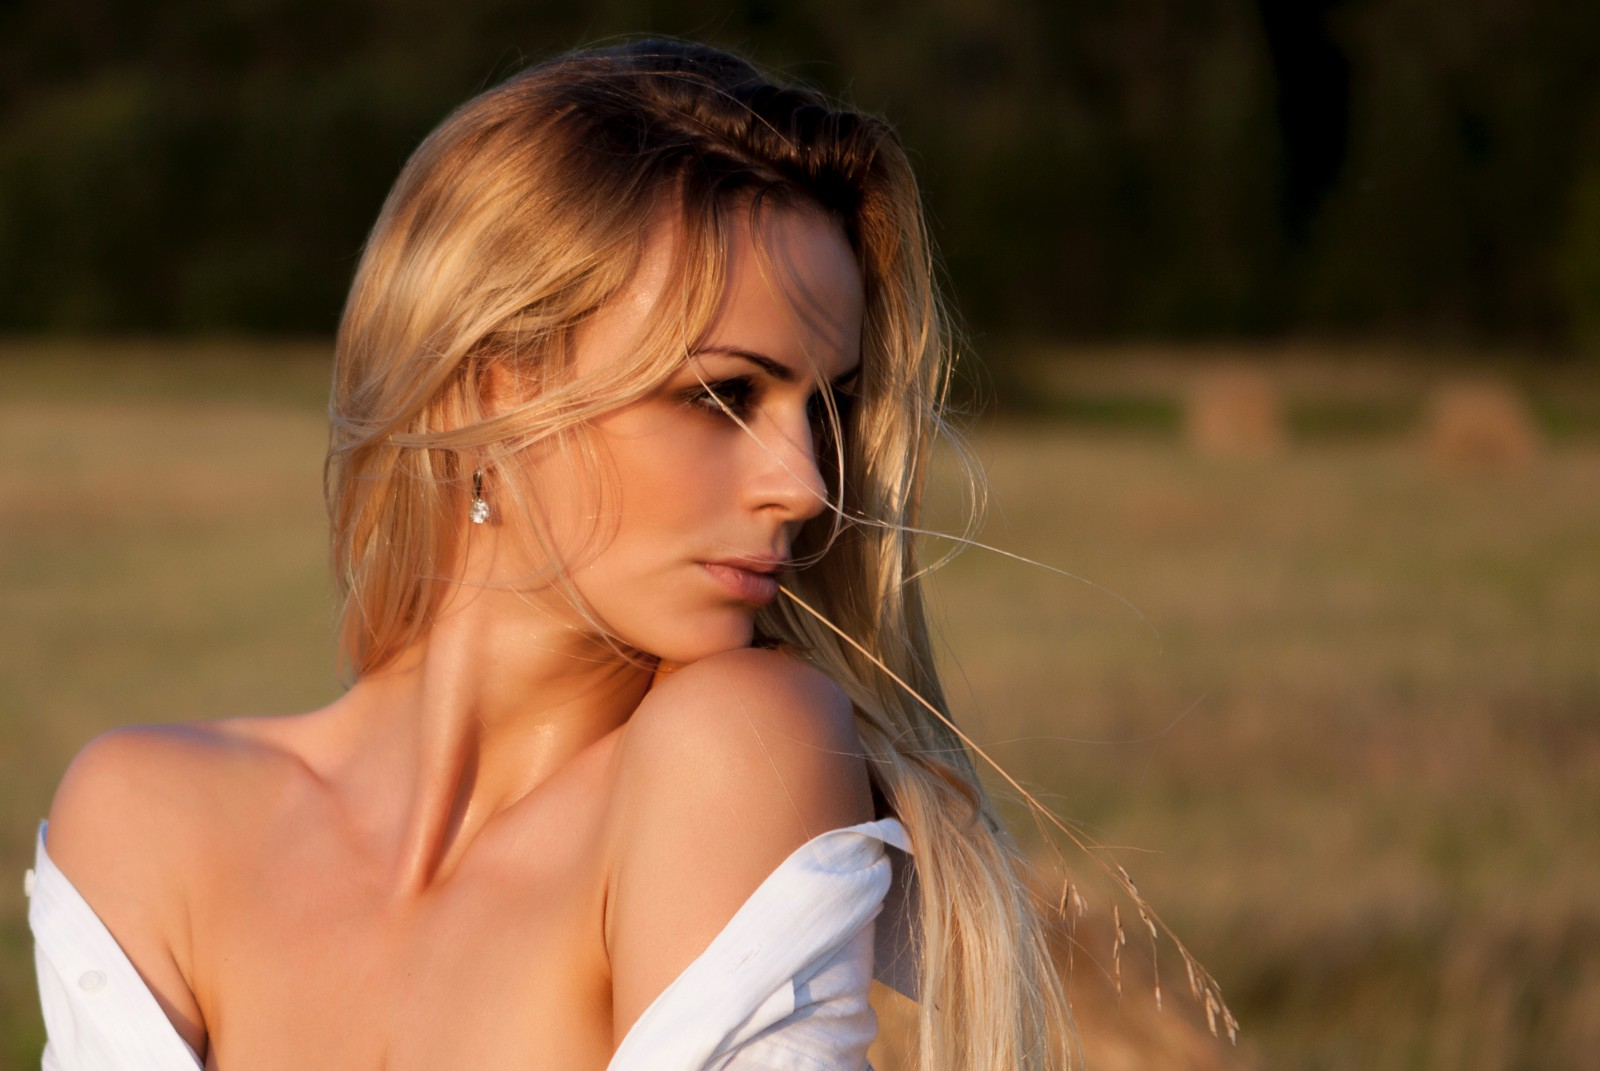 Lonely women dating